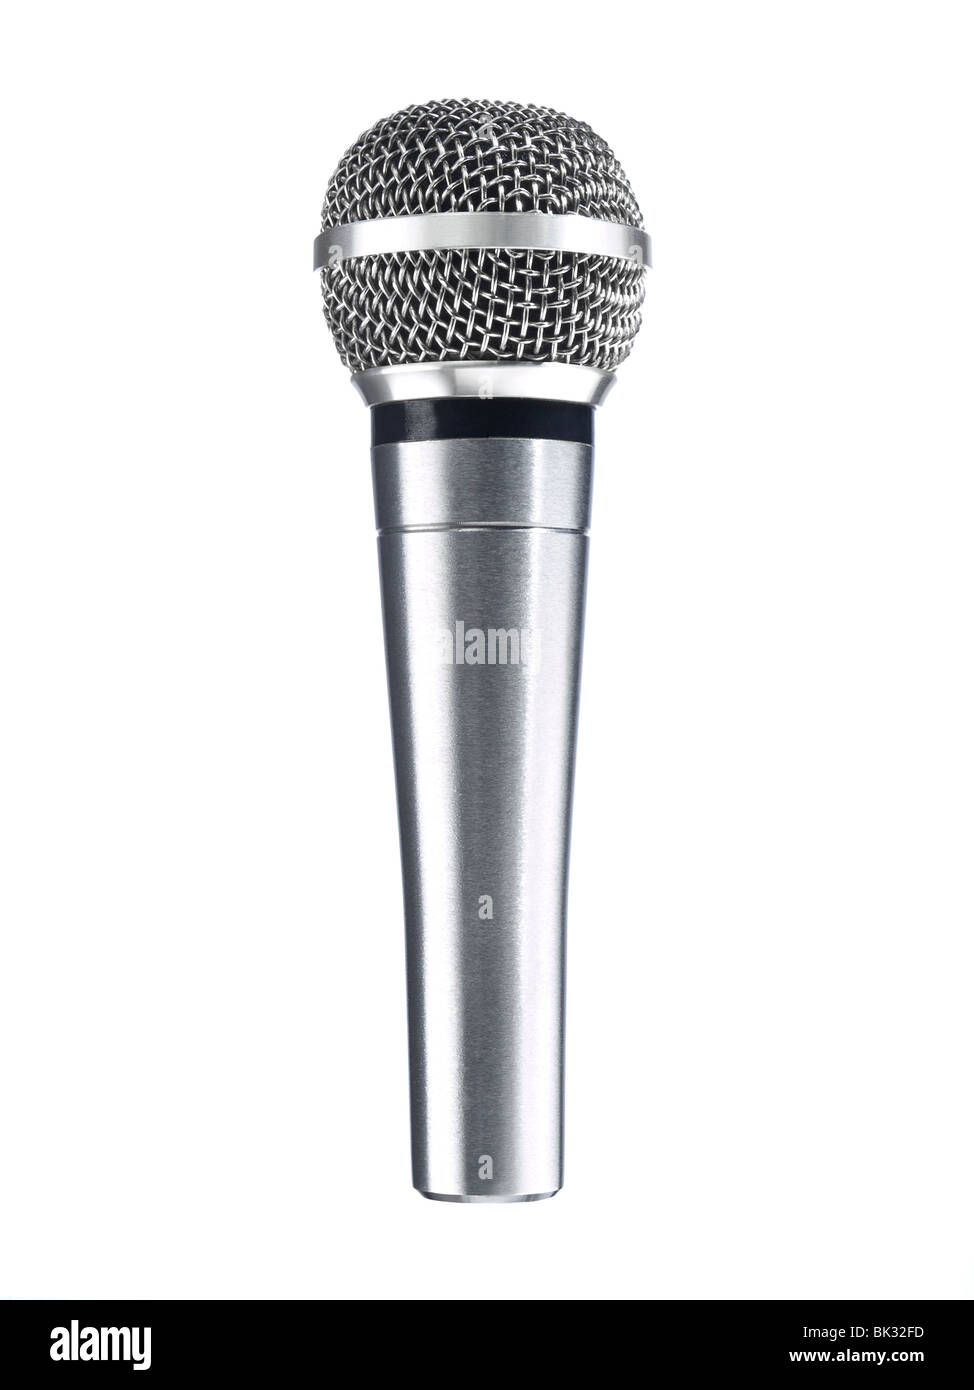 A metallic microphone isolated over a white background. - Stock Image